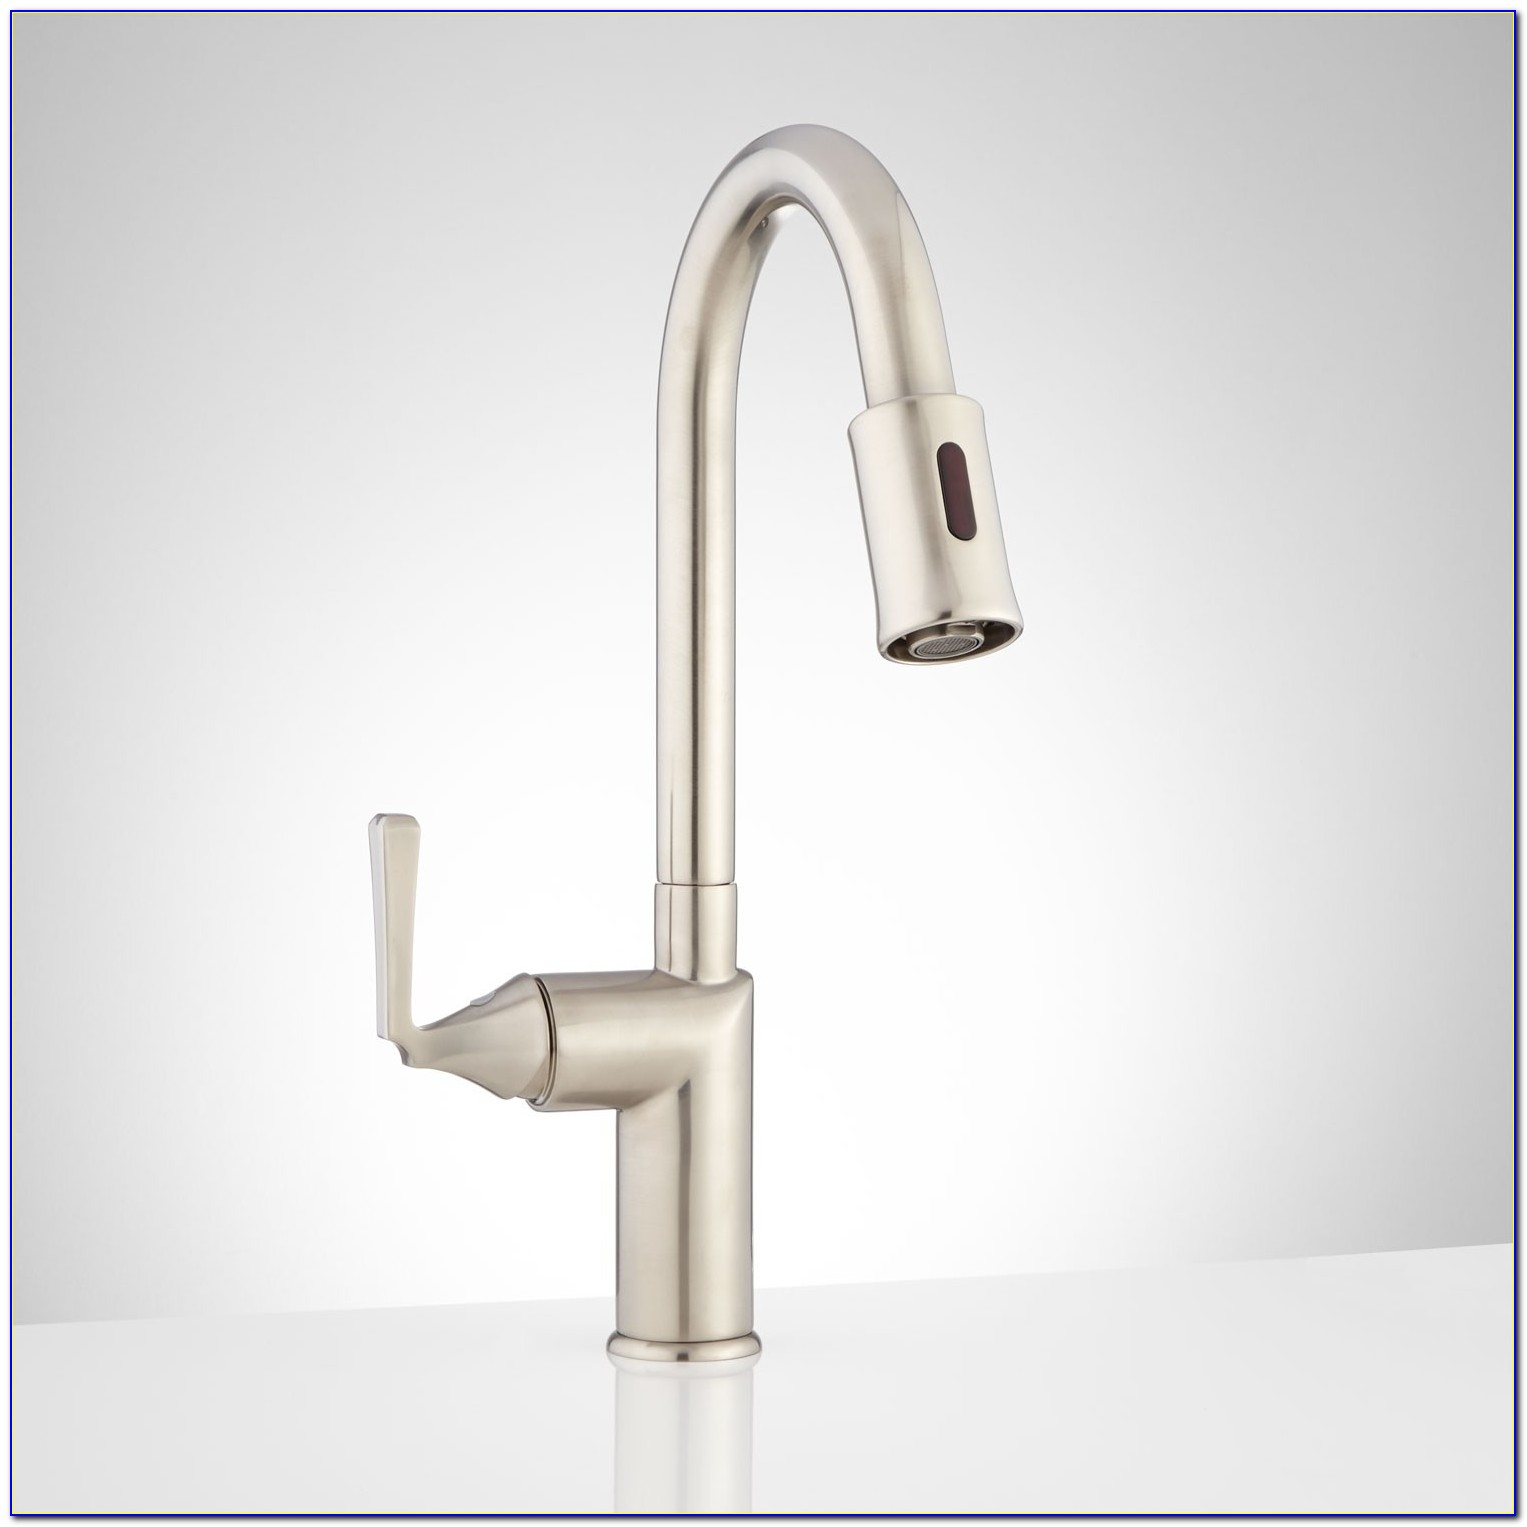 Kitchen Delta Touch Faucet Touchless 2017 With Motion Sensor Within Measurements 1500 X 1500